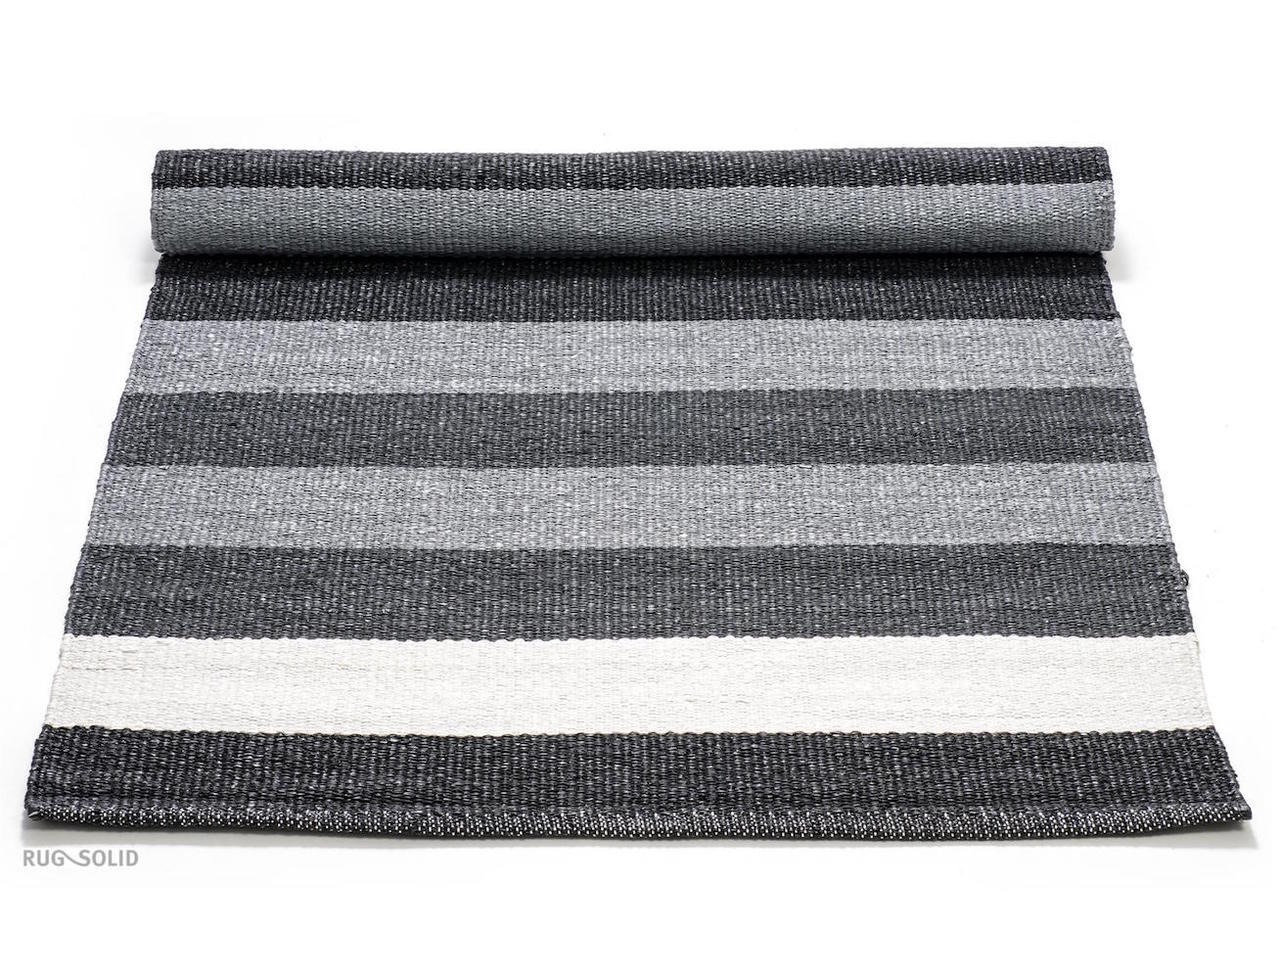 PLASTIC RUG - BLACK/GREY/WHITE STRIPED